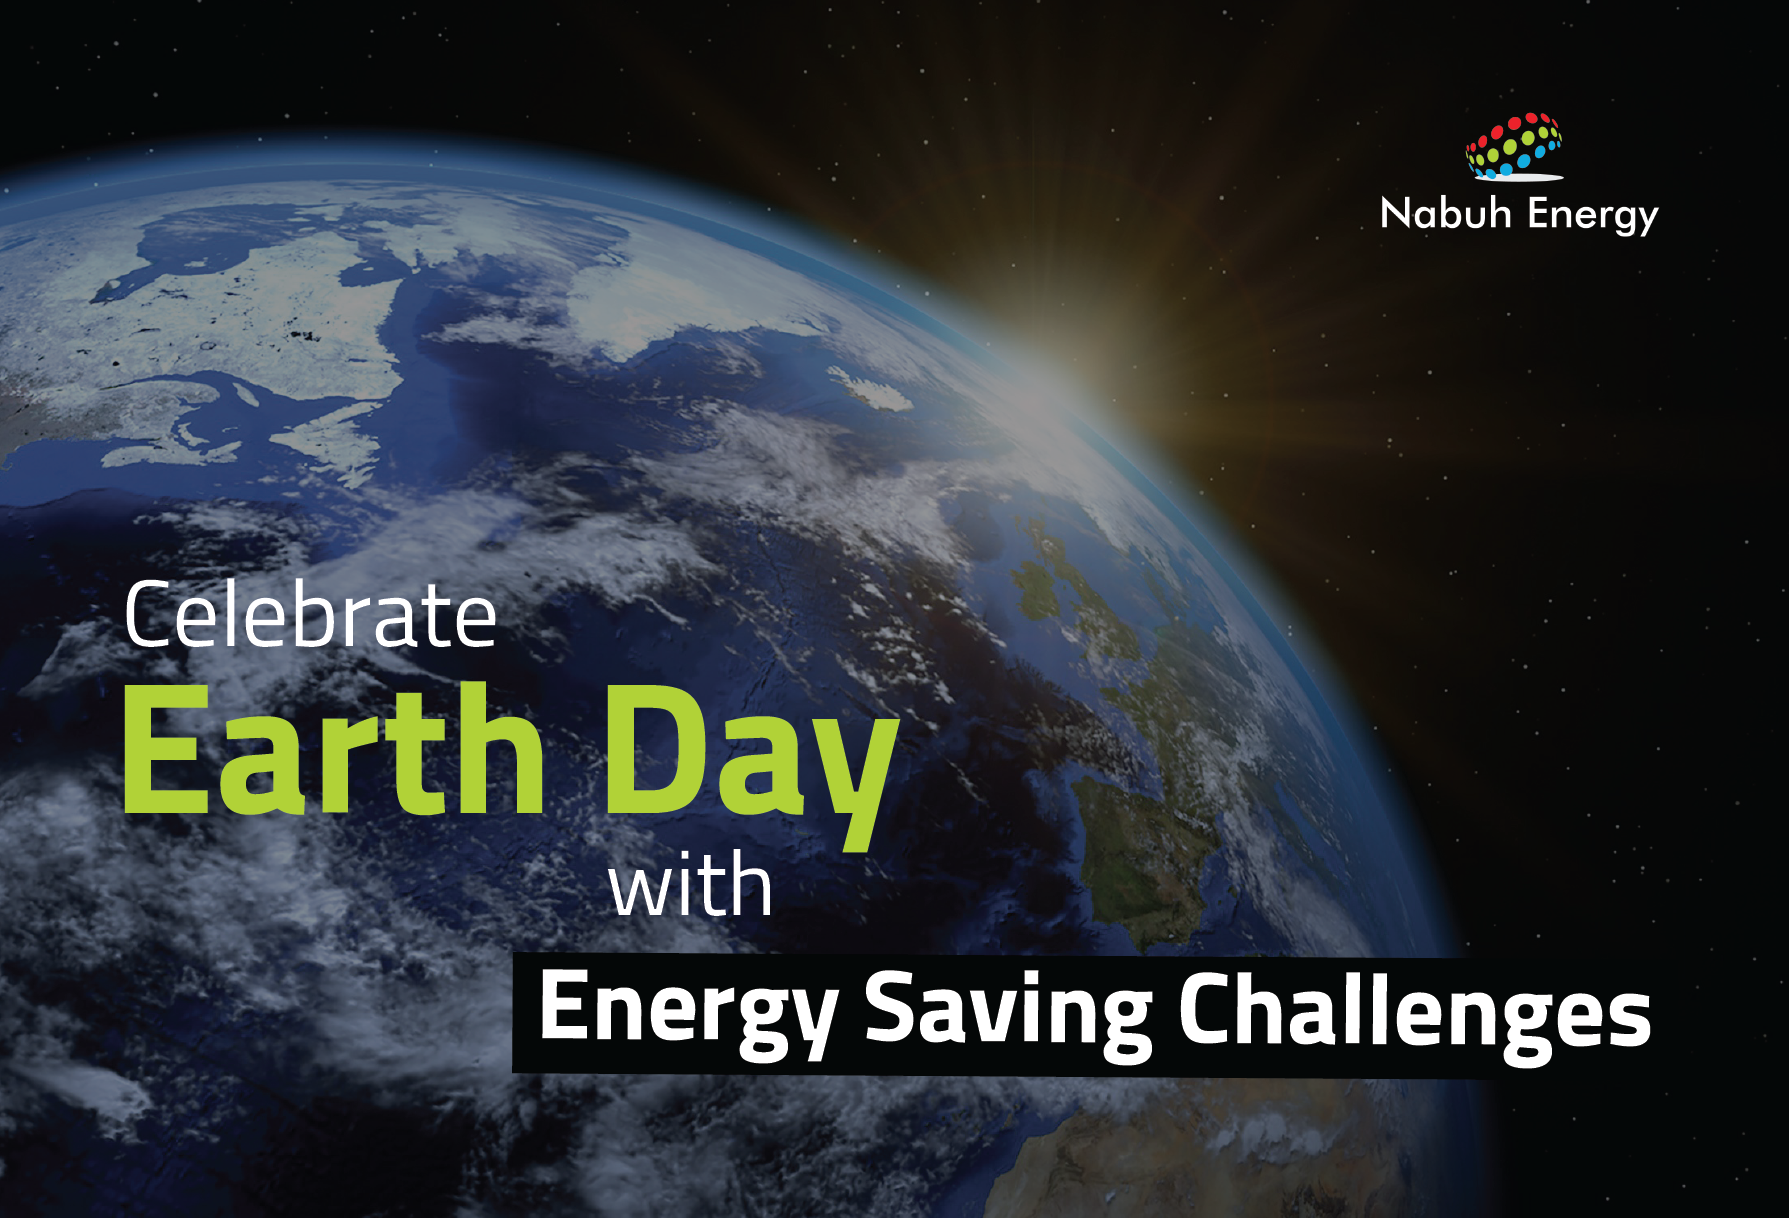 Celebrate Earth Day with Energy Saving Challenges Nabuh Energy